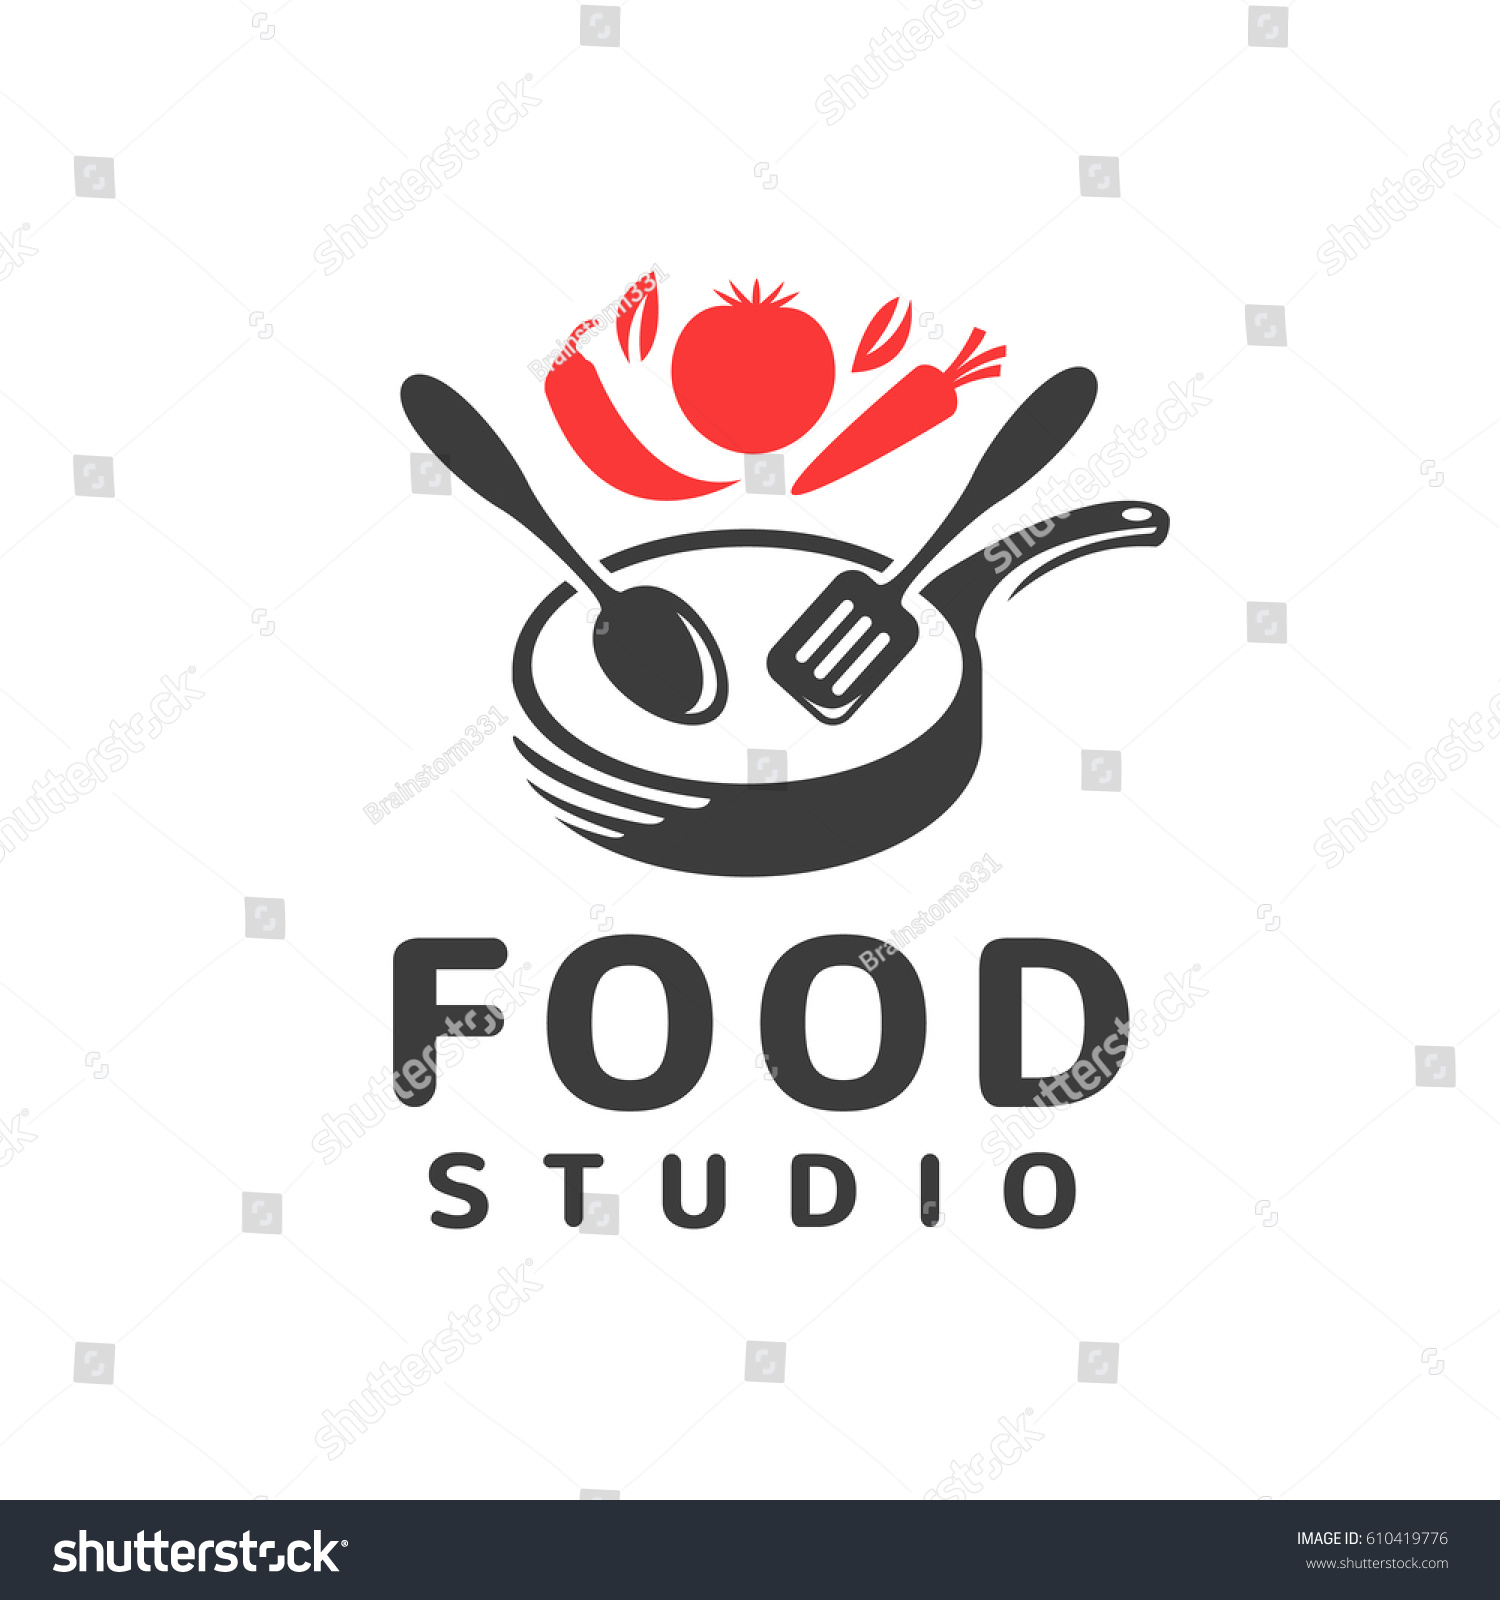 Restaurant Kitchen Toolste food studio vector logo kitchen tools stock vector 610419776